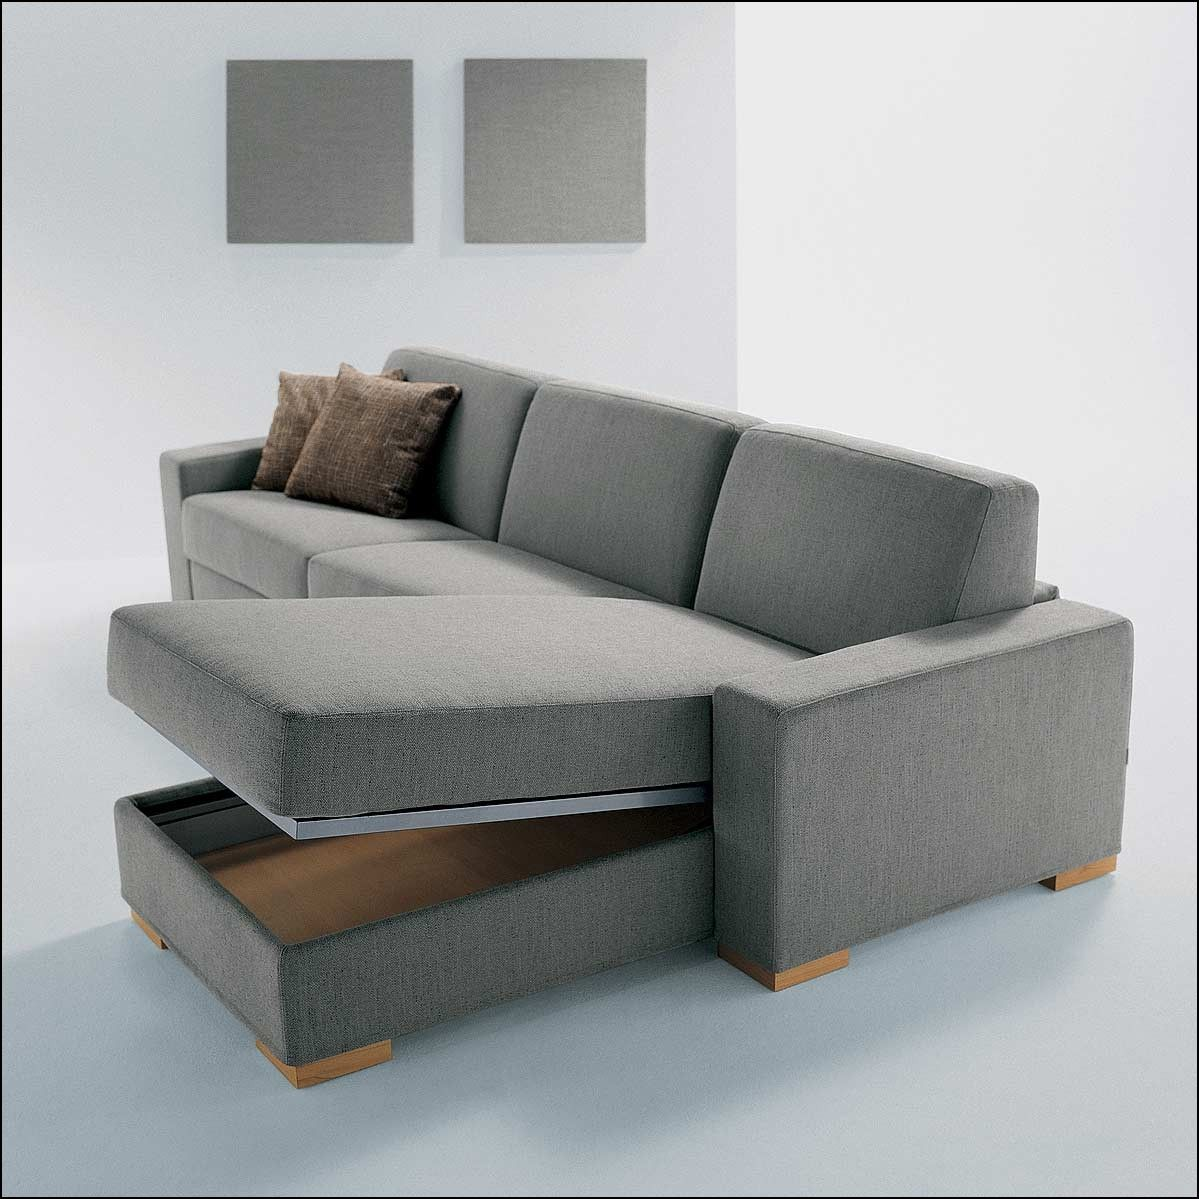 L Shaped Couch With Storage